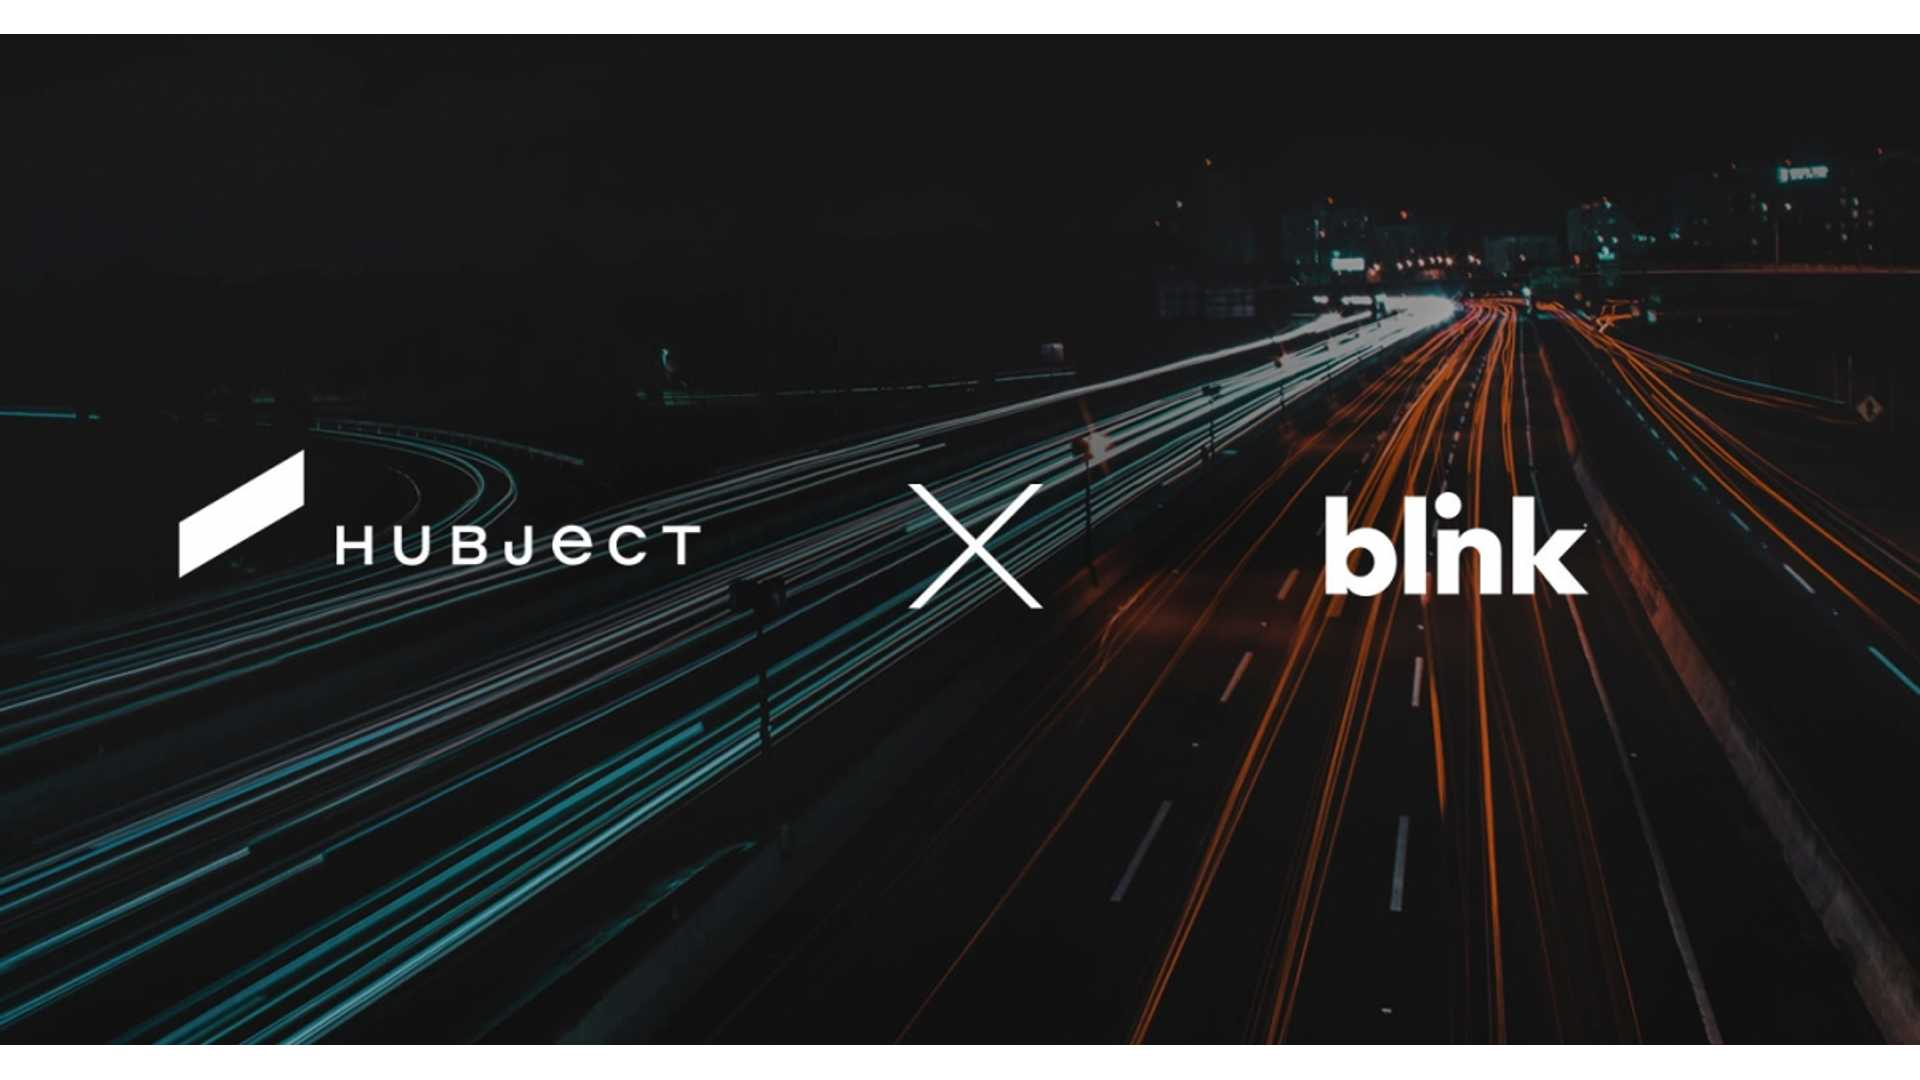 Blink Teams With Hubject To Increase Charger Access In U S